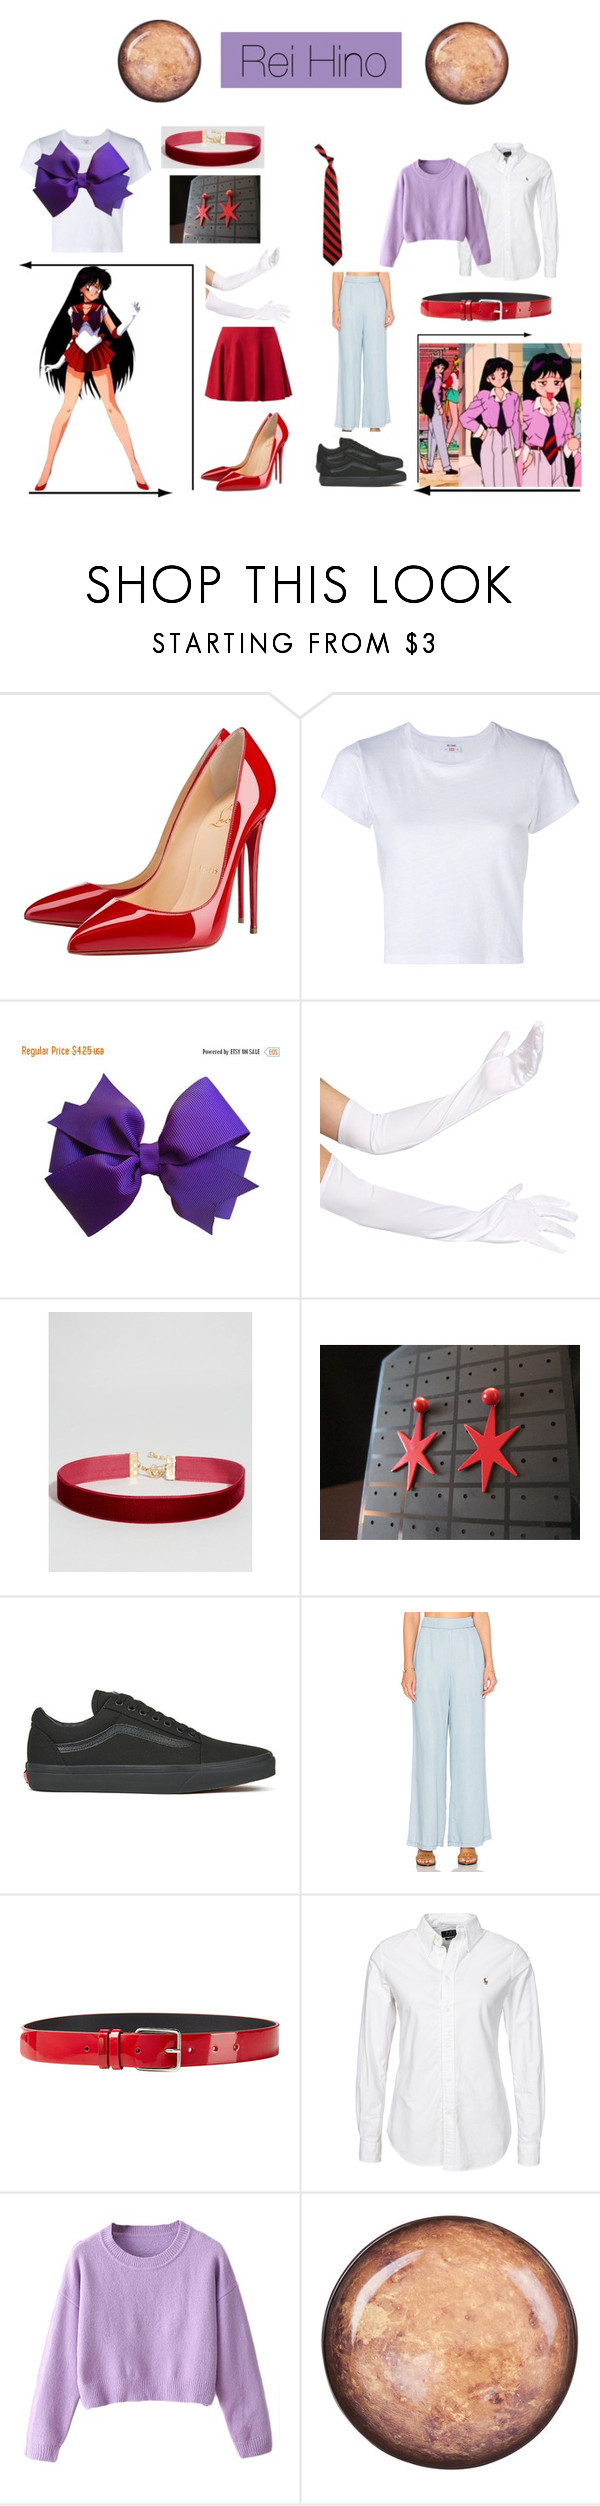 """Sailor Mars: Rei Hino"" by mya0nah21 on Polyvore featuring Christian Louboutin, RE/DONE, Vans, BB Dakota, Jil Sander, Polo Ralph Lauren and Seletti"